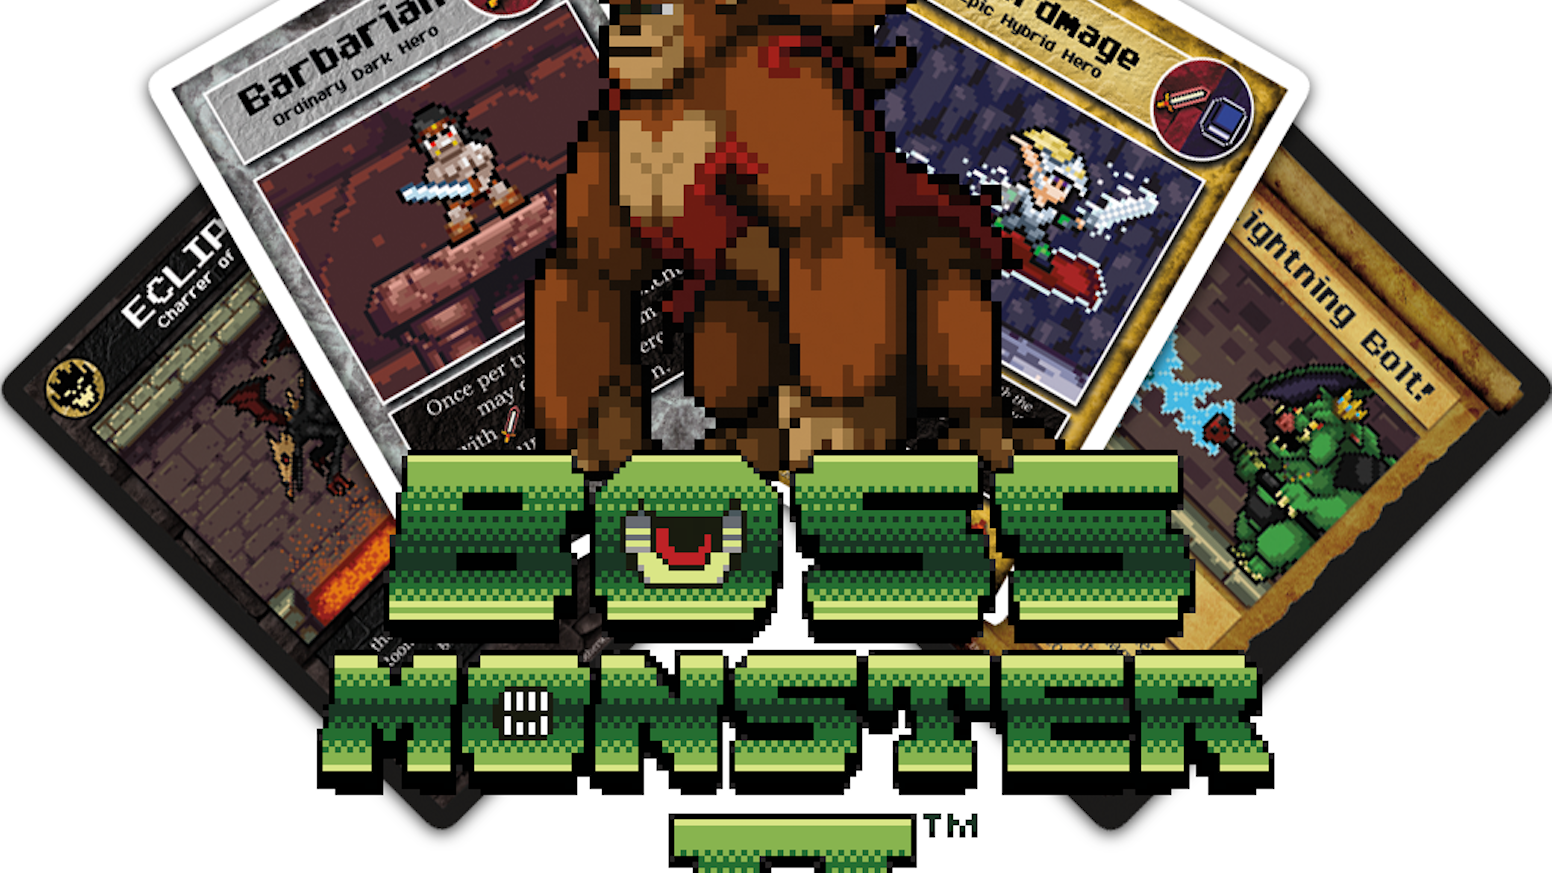 Become a Boss and crush puny heroes in this sequel to the hit card game! This 160-card set is playable on its own or as an expansion.